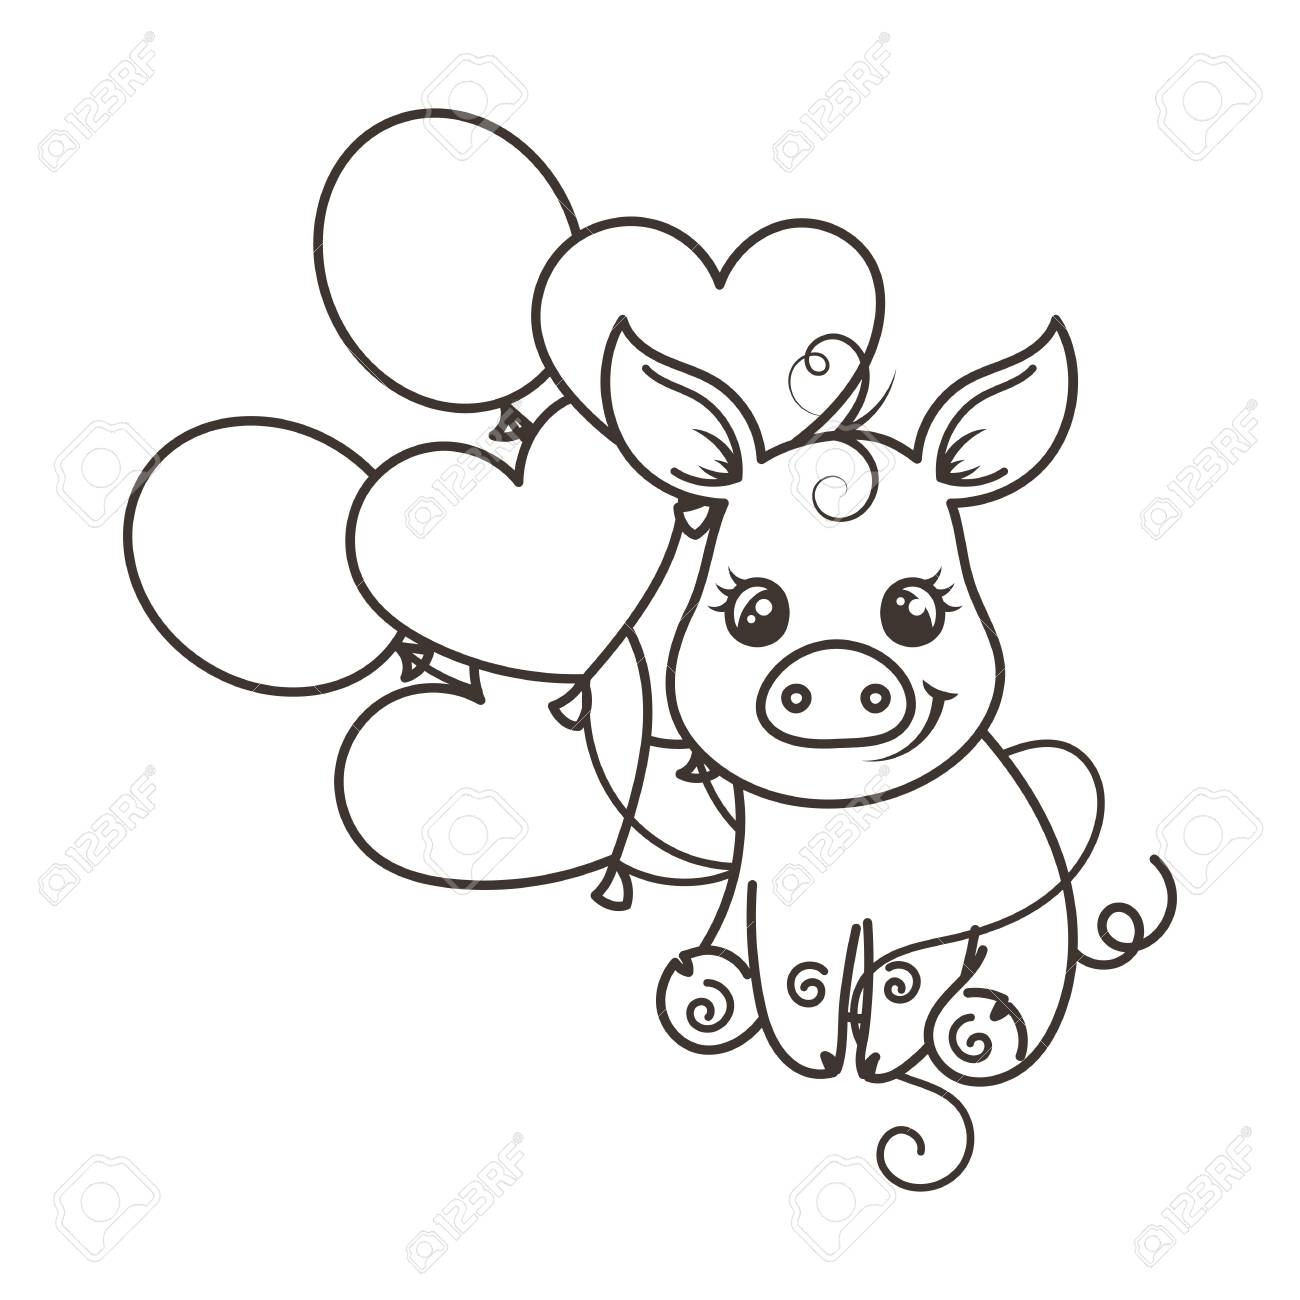 greeting card with cute cartoon pig with balloons coloring page